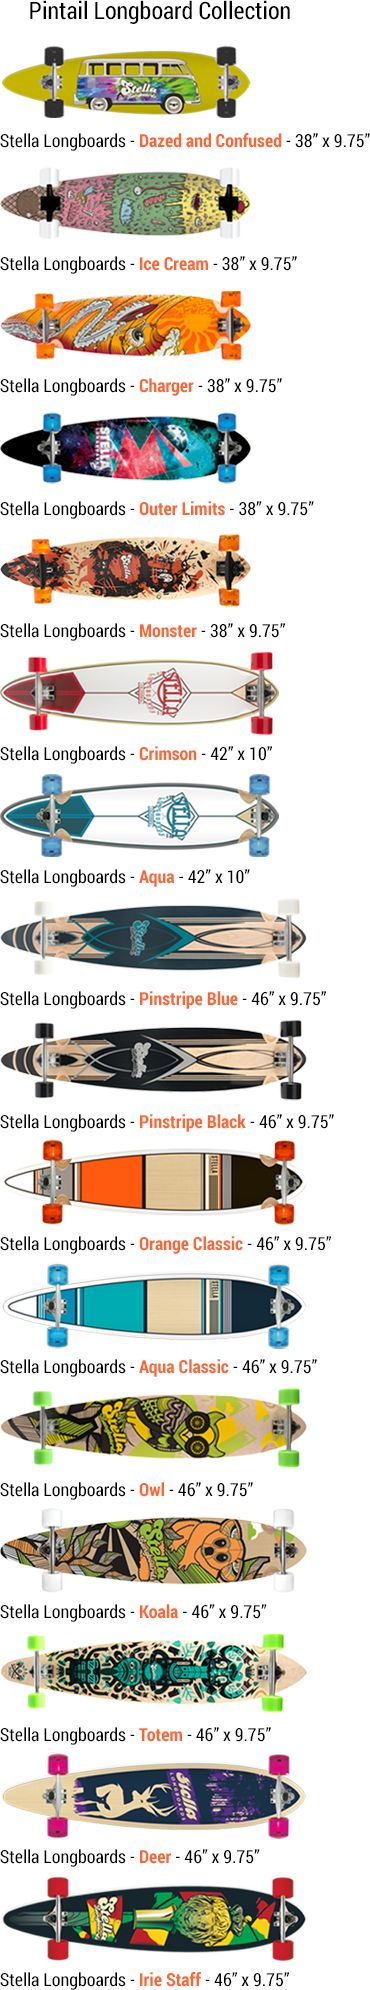 Pintail Longboard Collection from Stella Longboards #longboard @longboardsusa